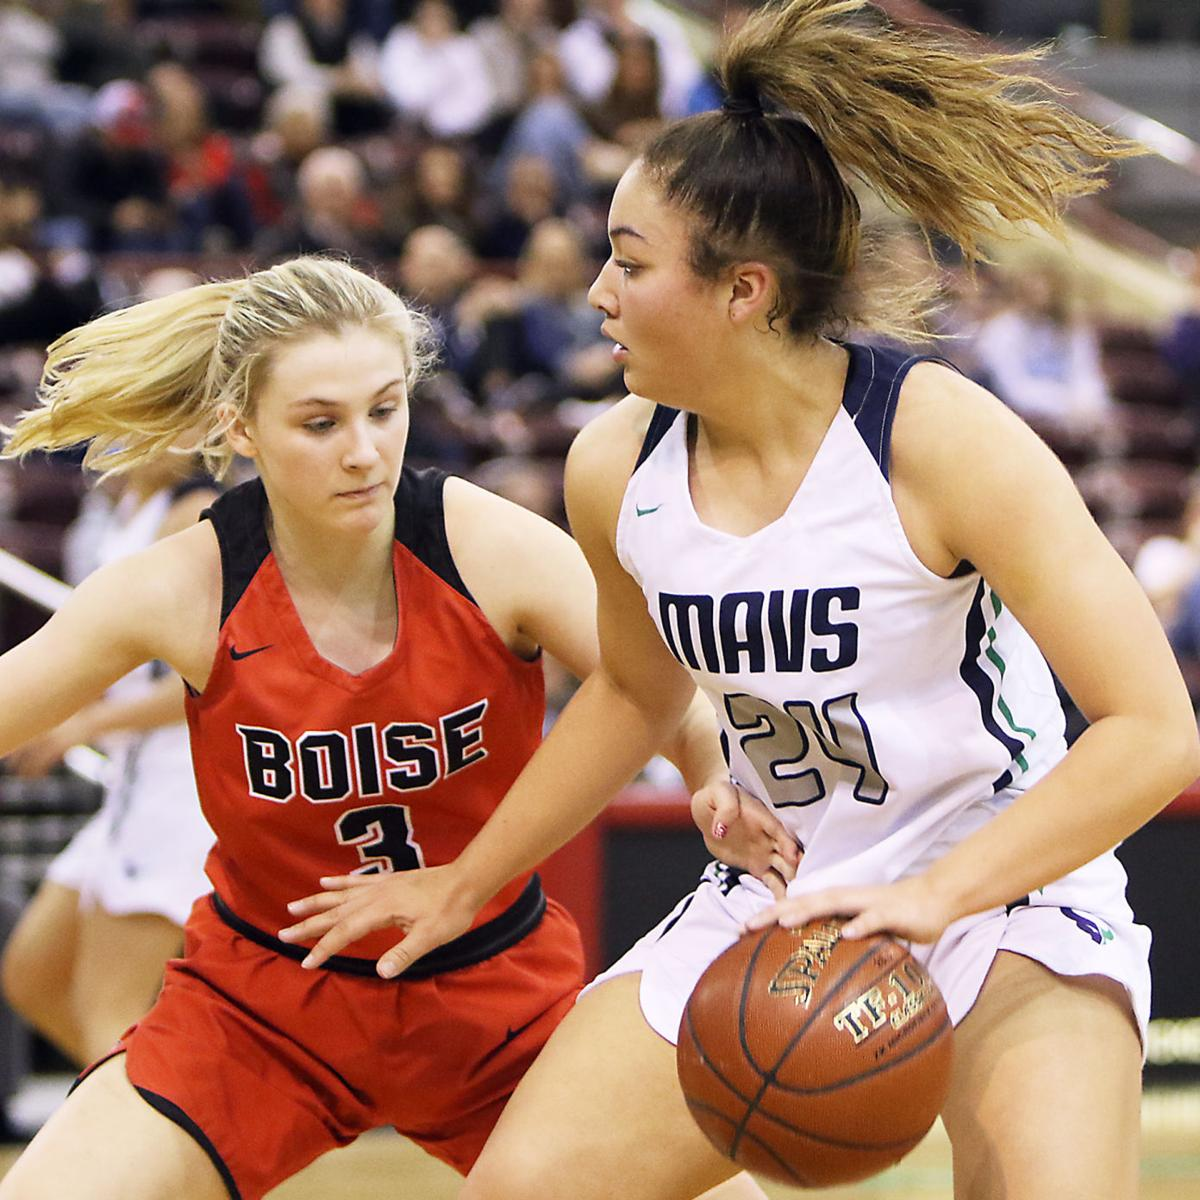 IHSAA takes first step in potentially going away from predetermined seedings for all its state tourneys